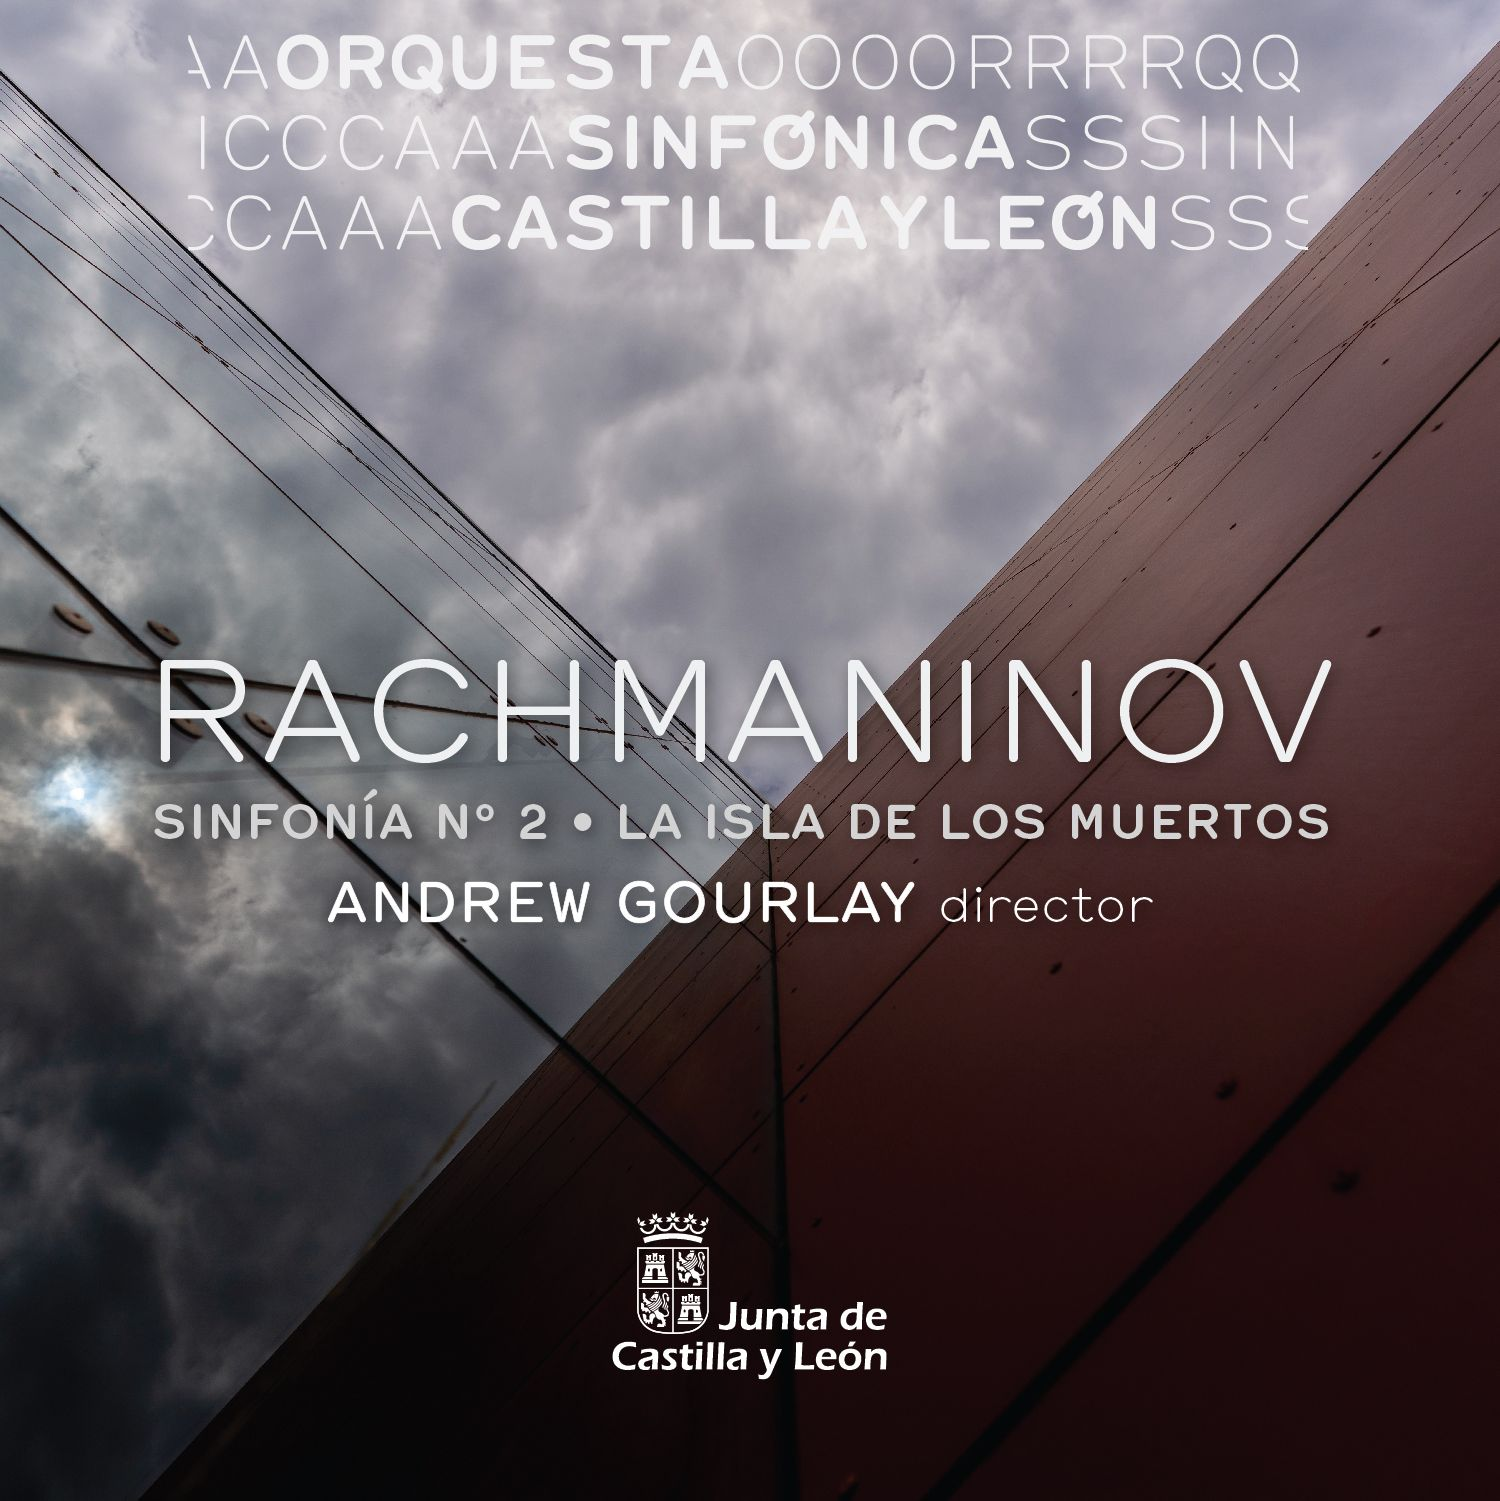 A Russian in Spain: Rachmaninov from Valladolid